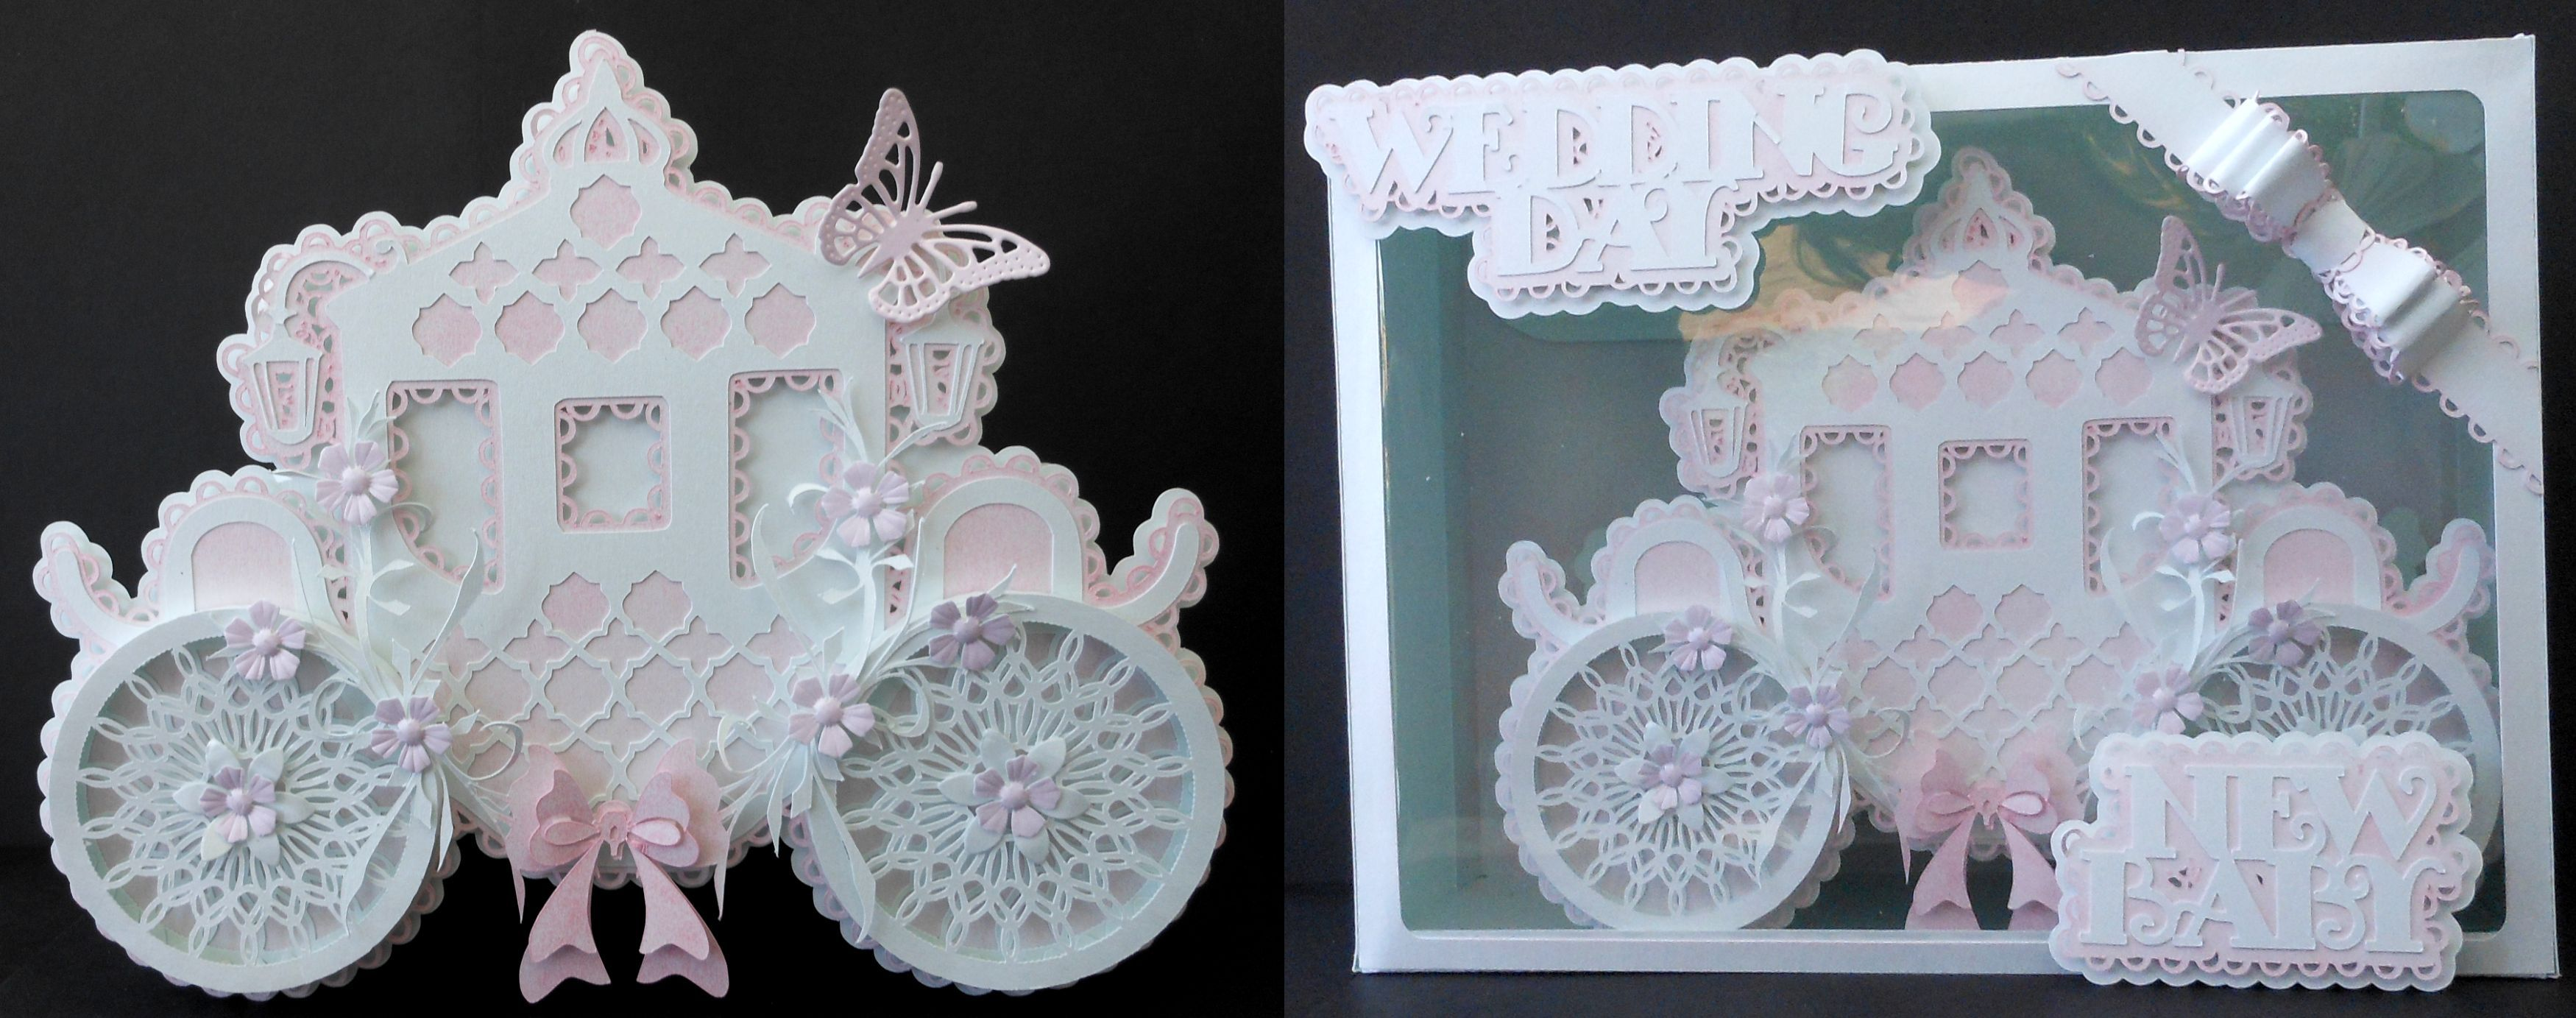 Designed and cut on Silhouette Cameo.... for Weddings or New babies